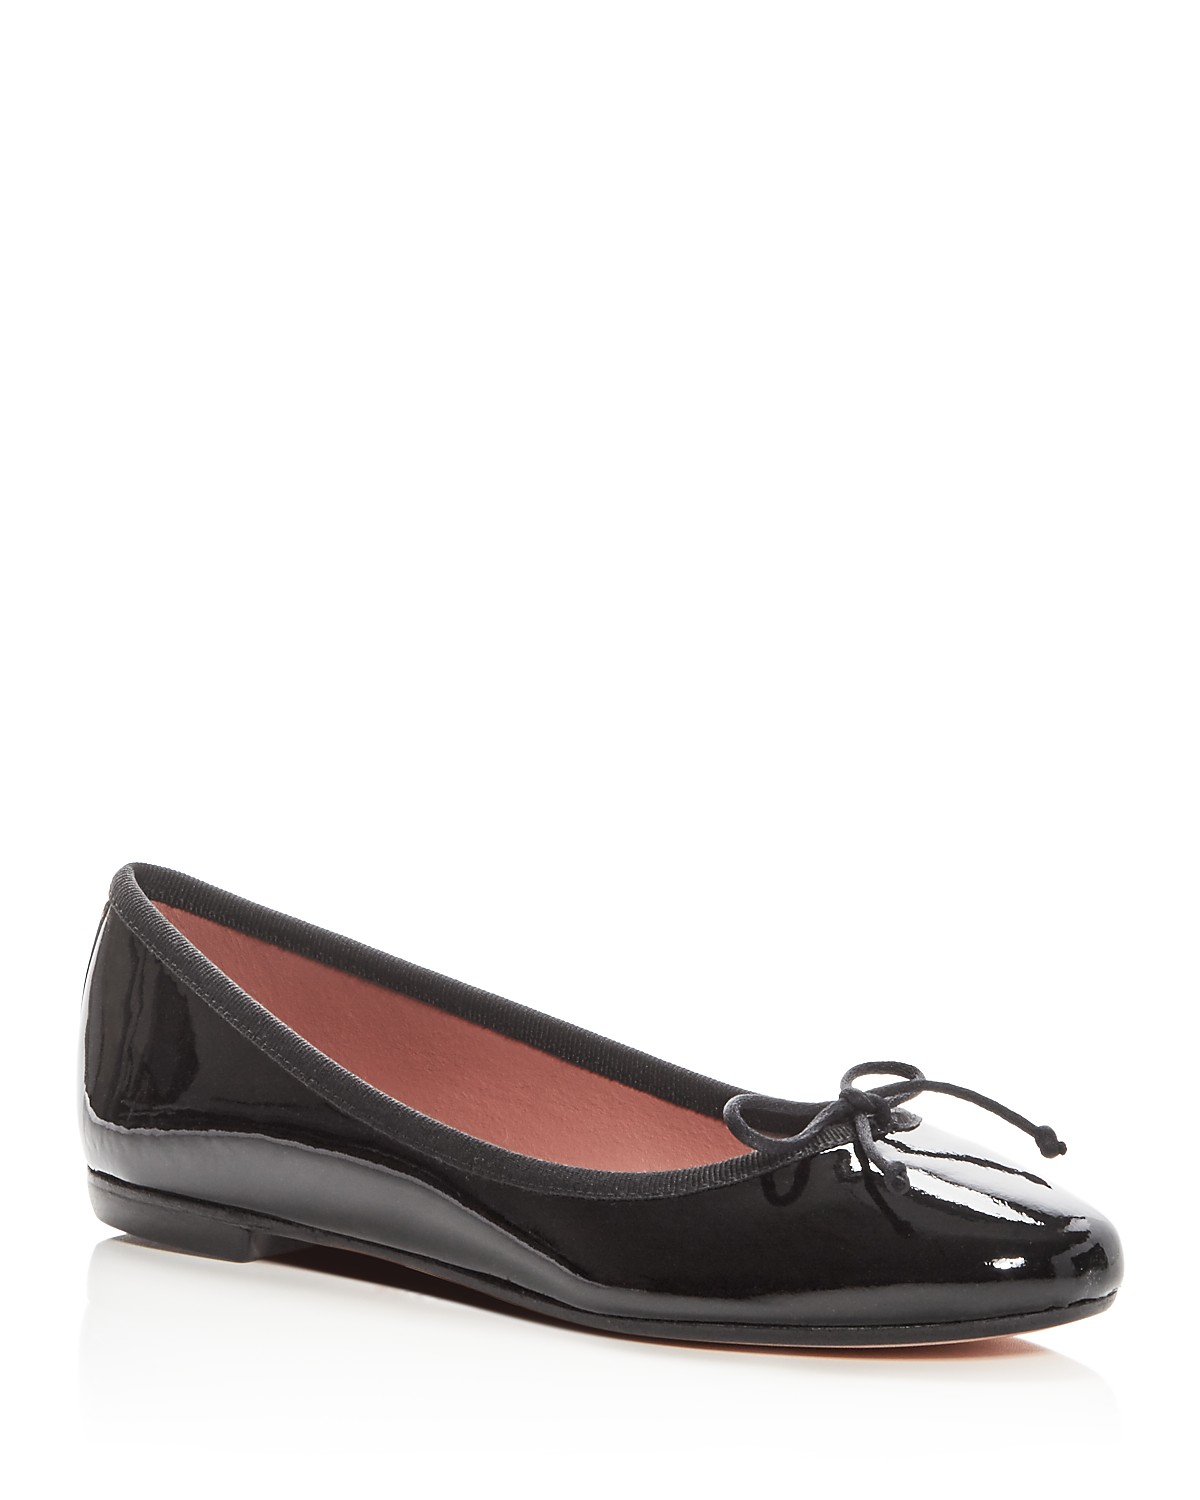 Fashionable For Sale Bloomingdale's Women's Kacey Italian Leather Ballet Flats - 100% Exclusive Recommend Discount Cheap Sale Visit Outlet 2018 New WmouDJWUAa